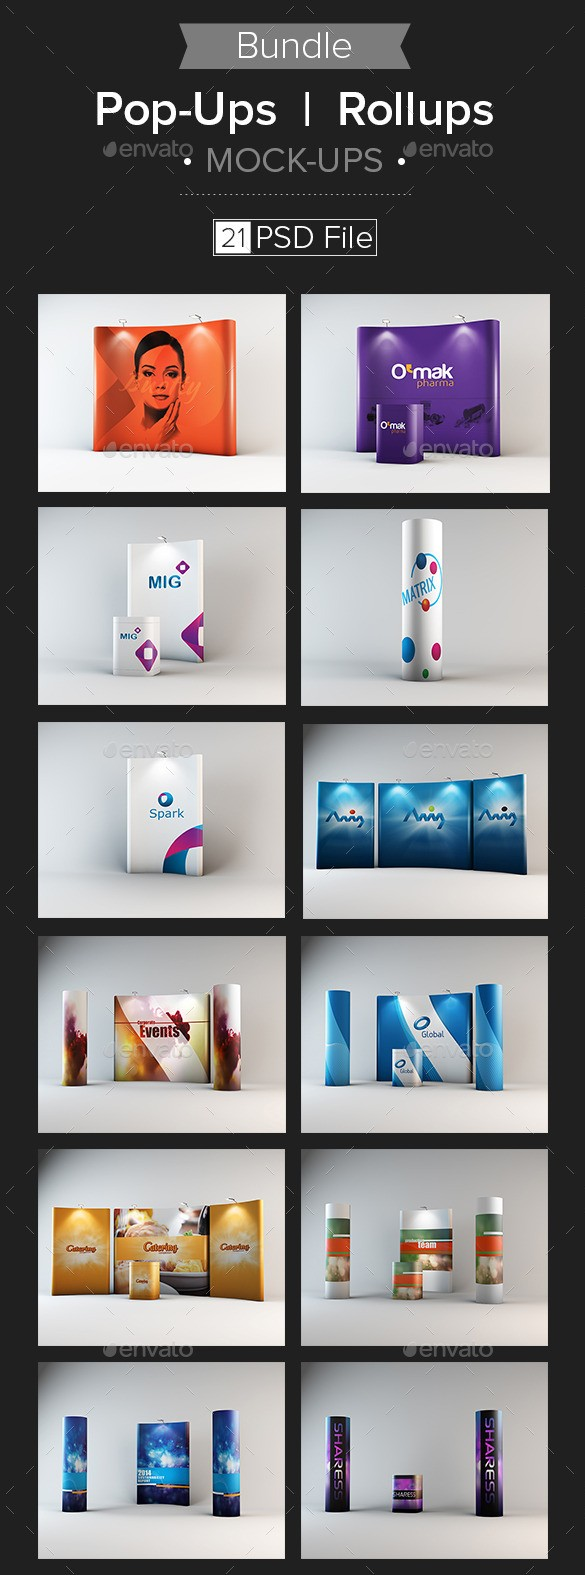 Pop-Ups/Rollups Mock-up Bundle